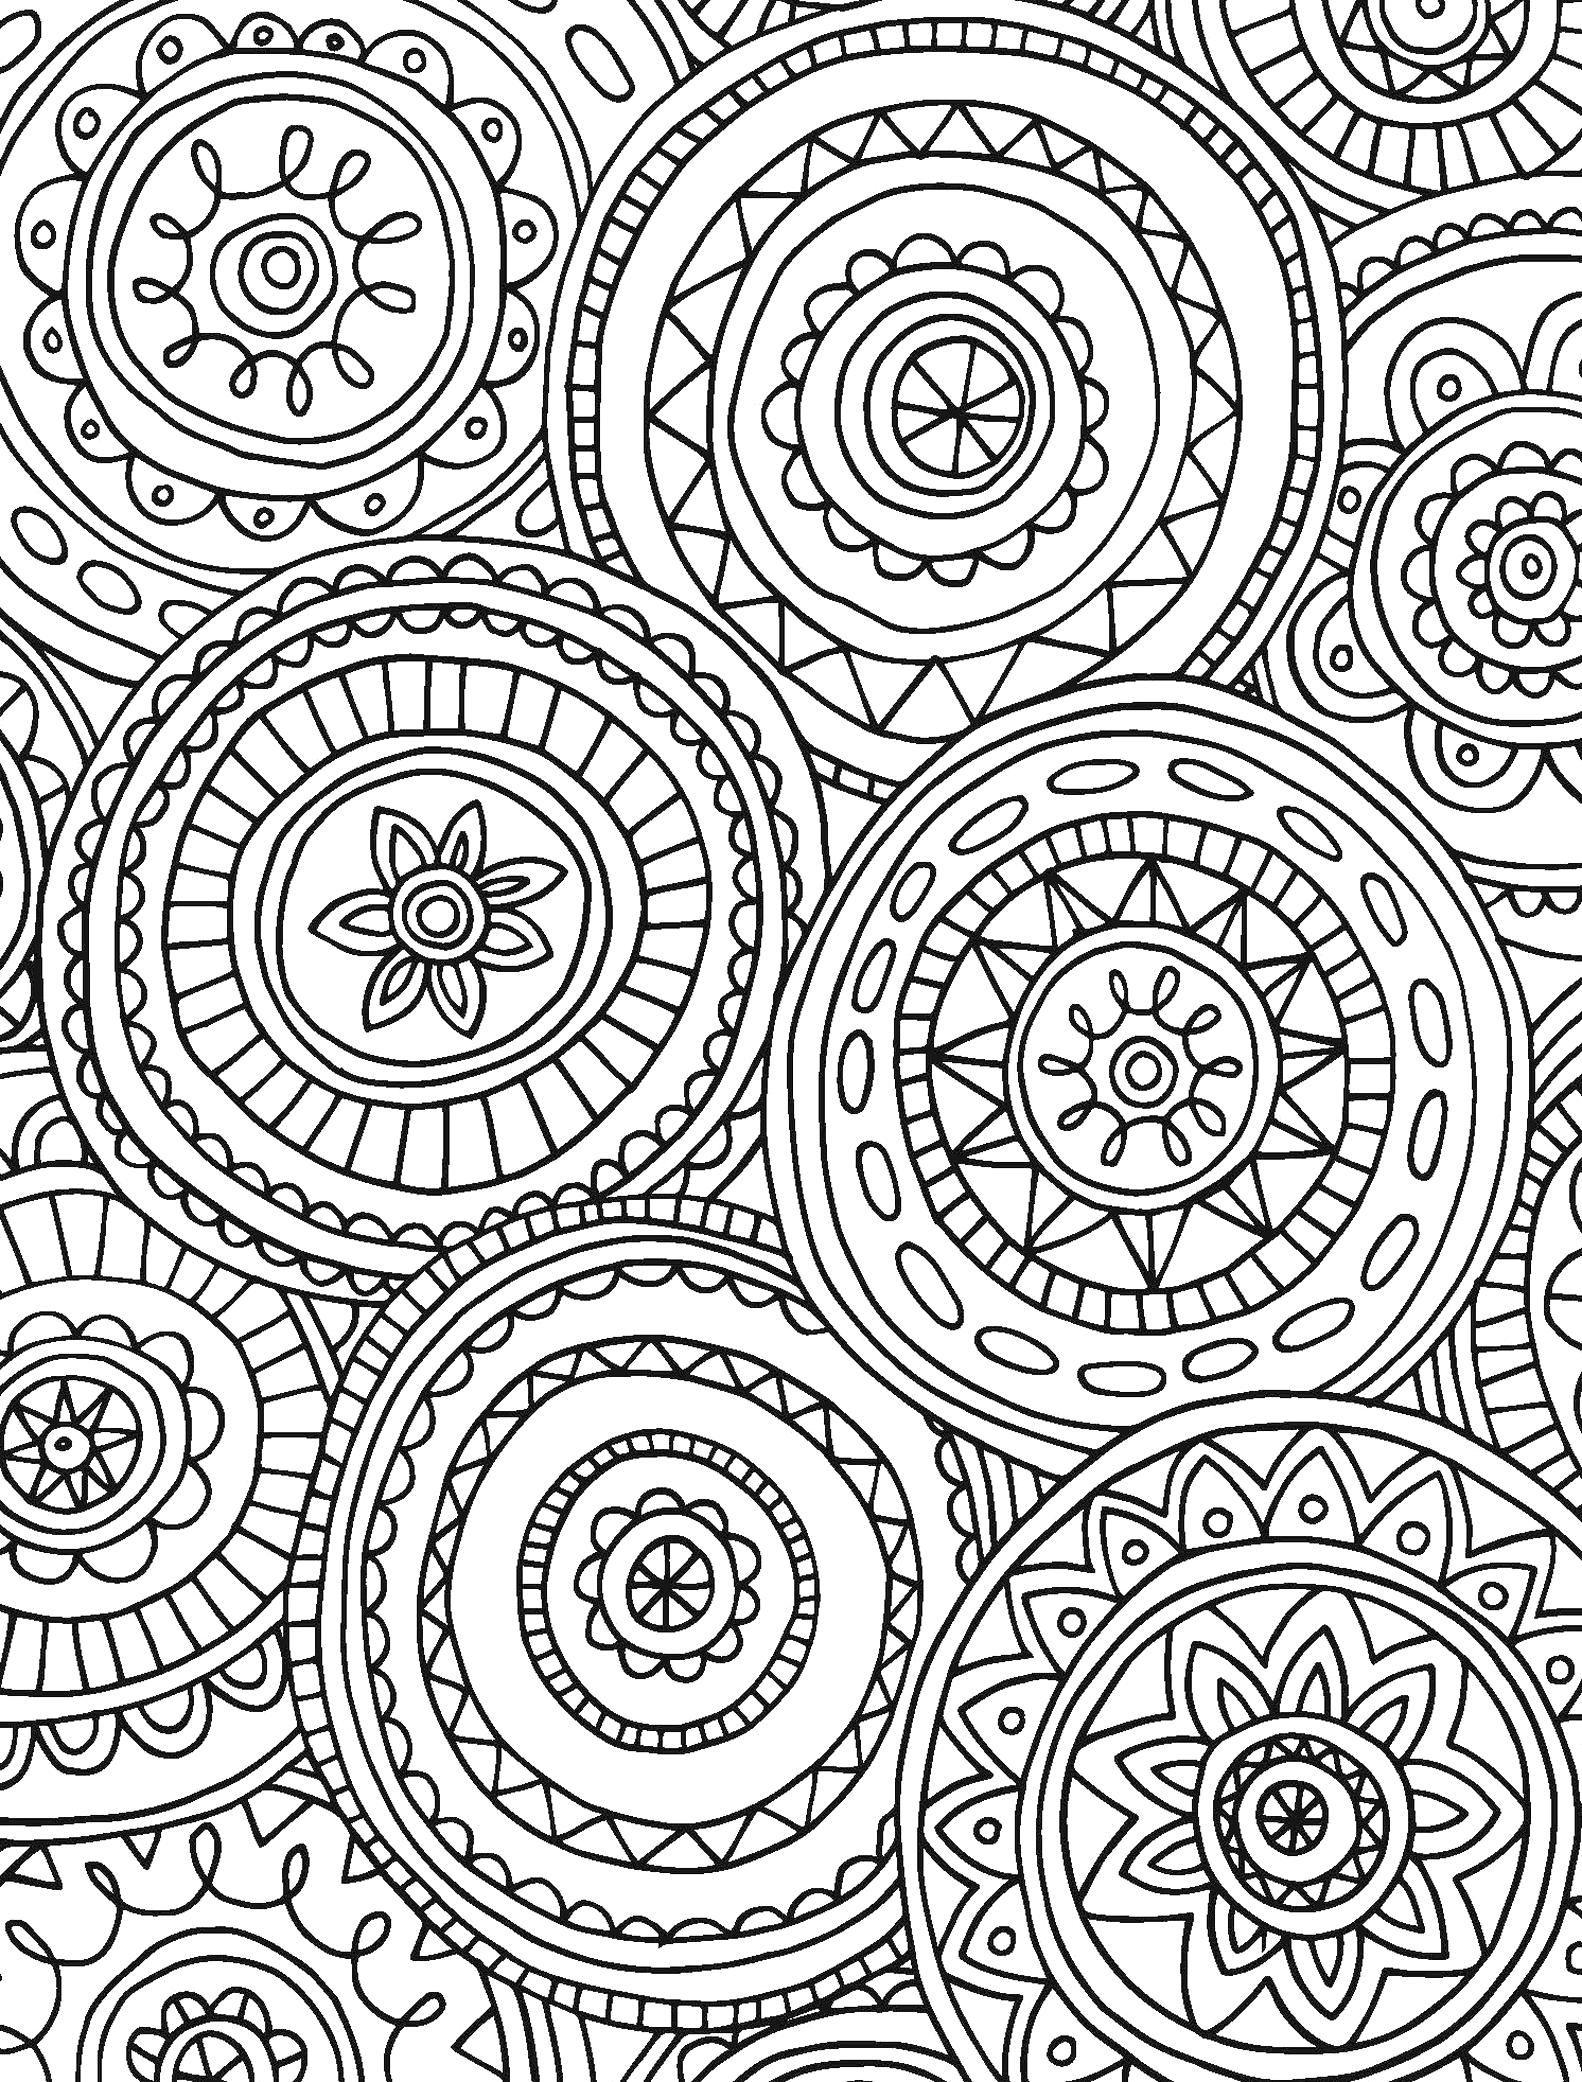 Interactive Coloring Pages for Adults Best Of top 14 Superlative